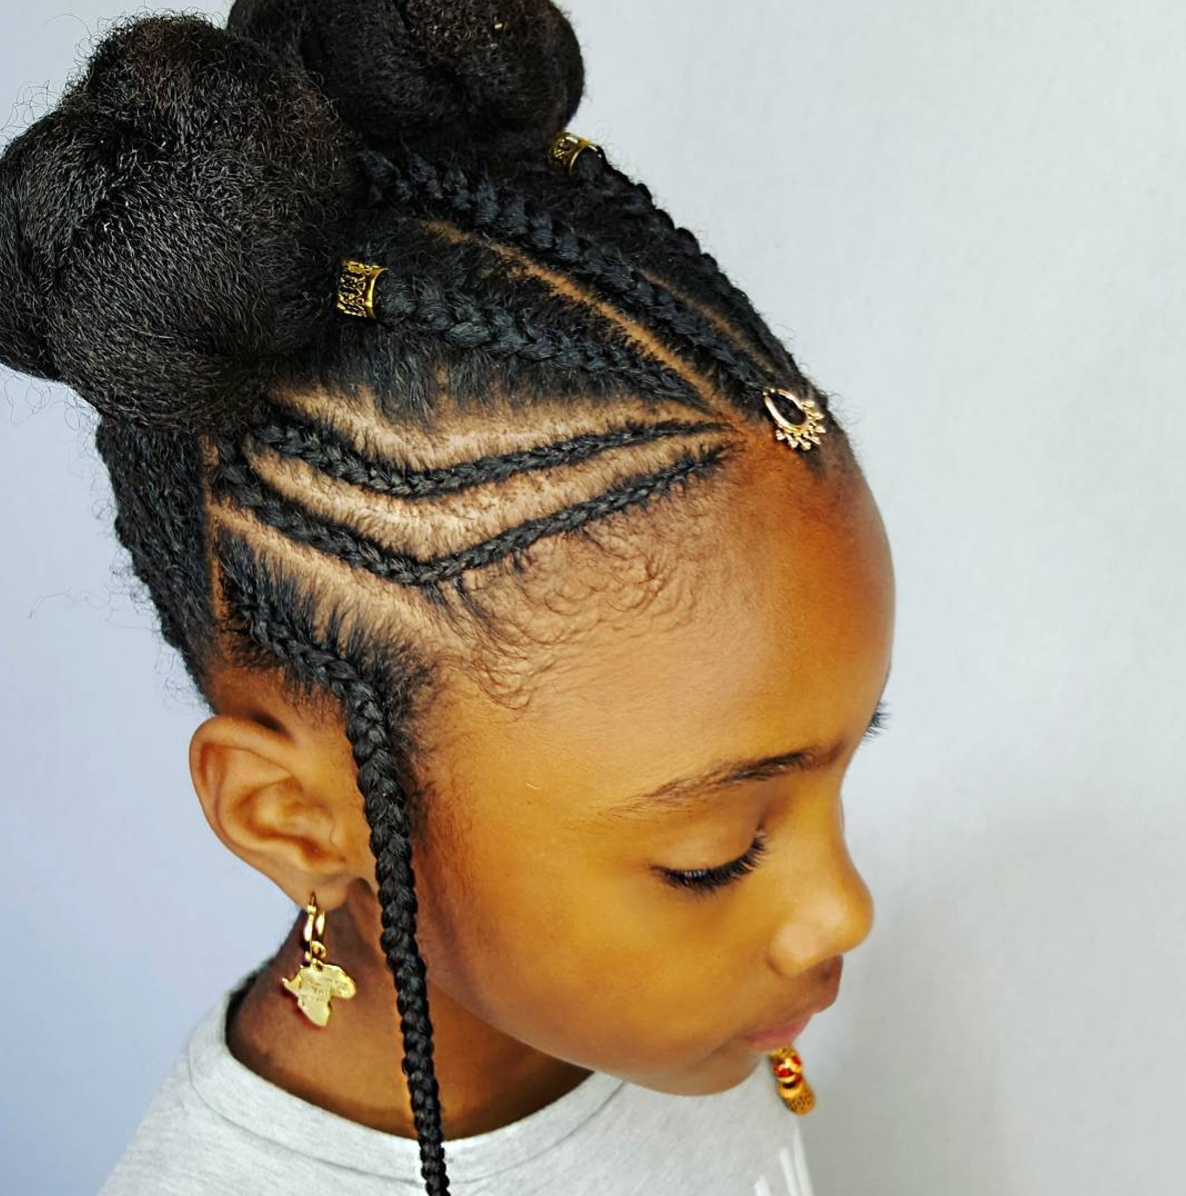 Most Recent Braided Hairstyles With Jewelry Intended For 40 Pretty Fun And Funky Braids Hairstyles For Kids (View 11 of 15)